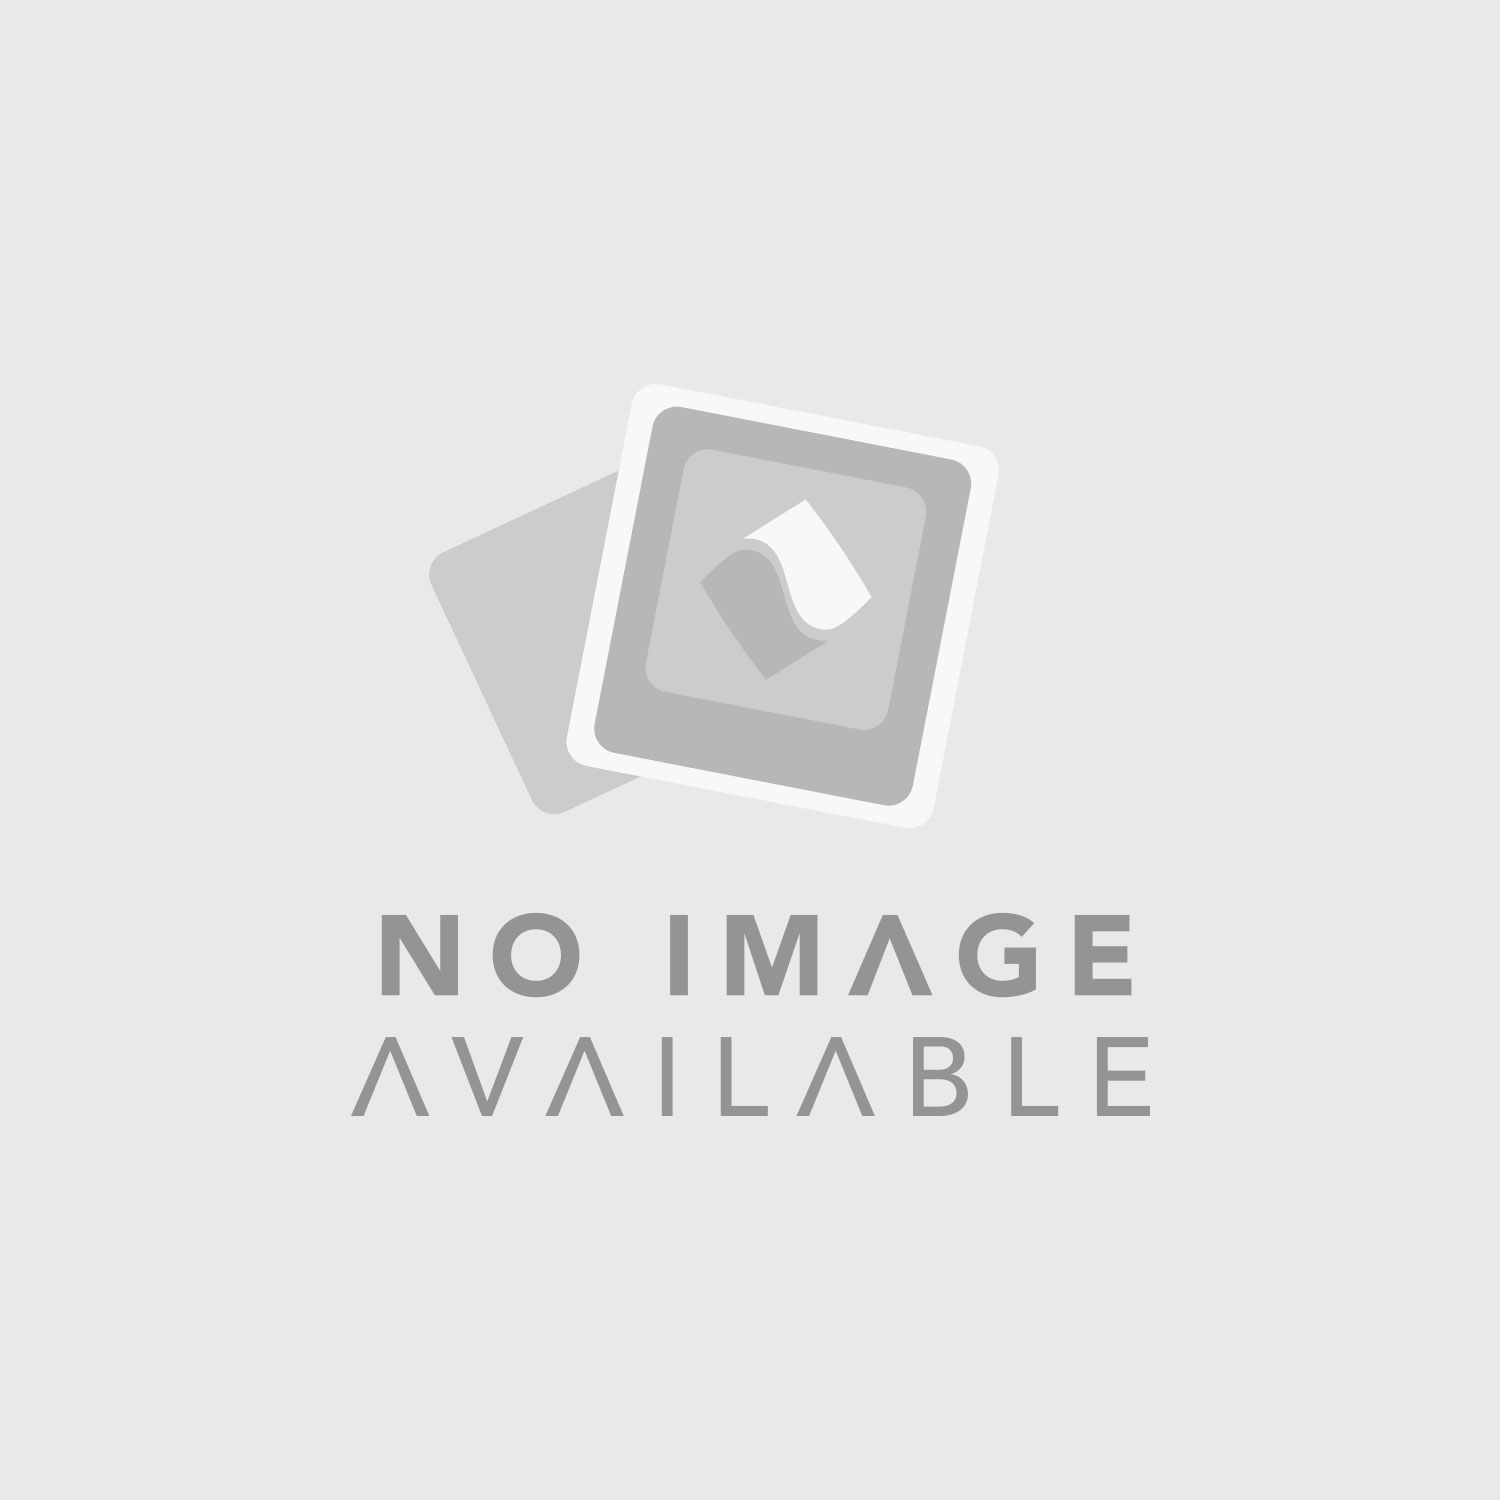 Soundcraft GB2 16 Channel Live Sound/Recording Console with 2 Stereo Channels & 2 Stereo Group Outs